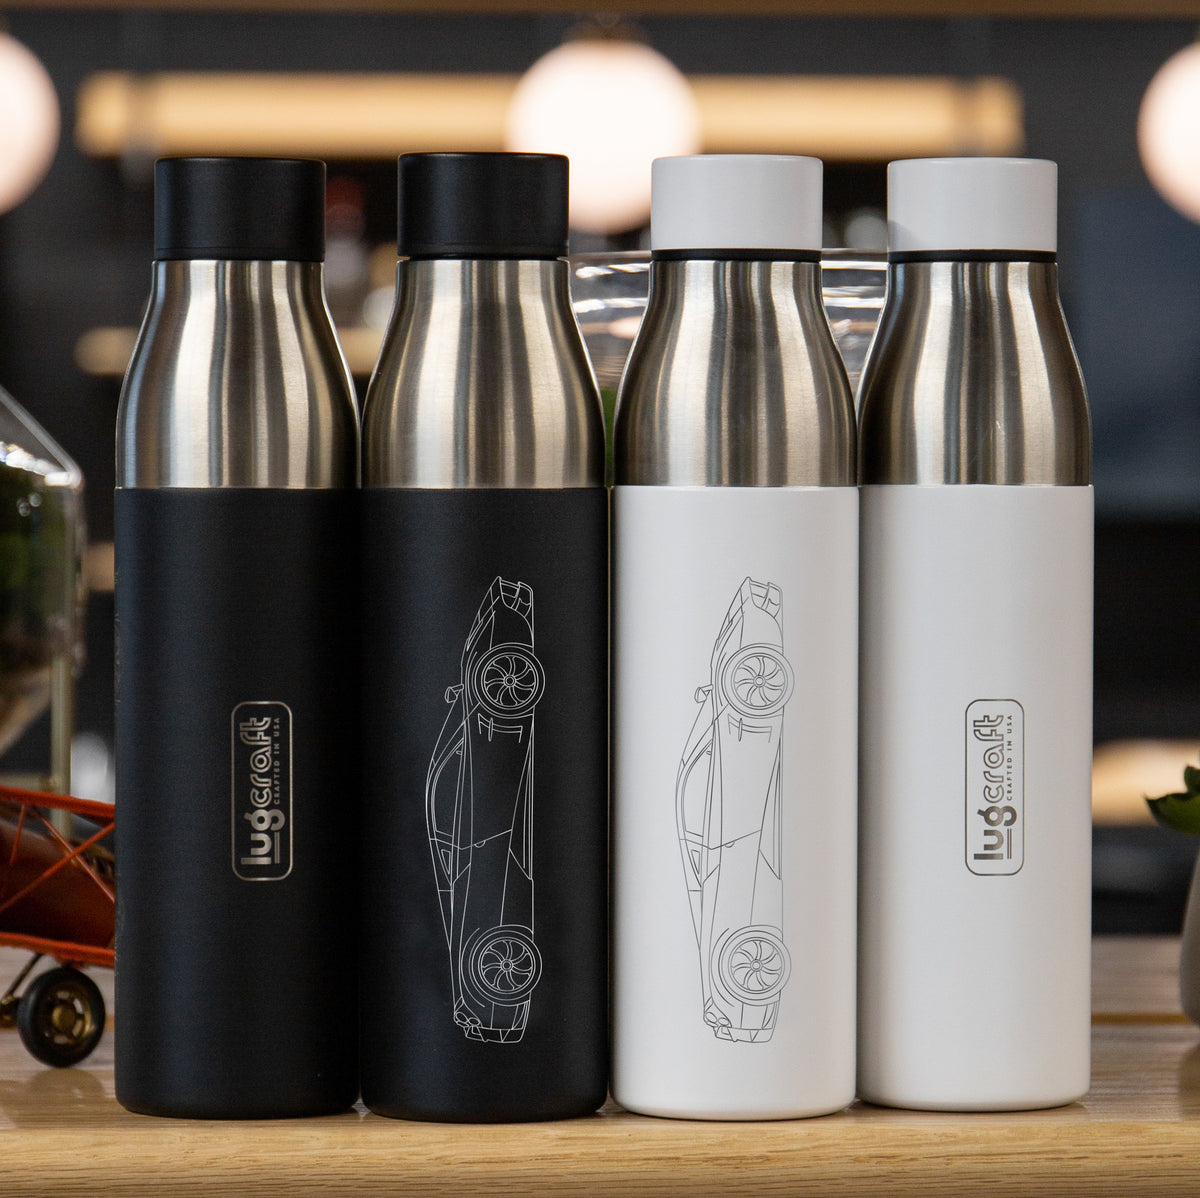 Pagani Huayra Insulated Stainless Steel Water Bottle - 21 oz